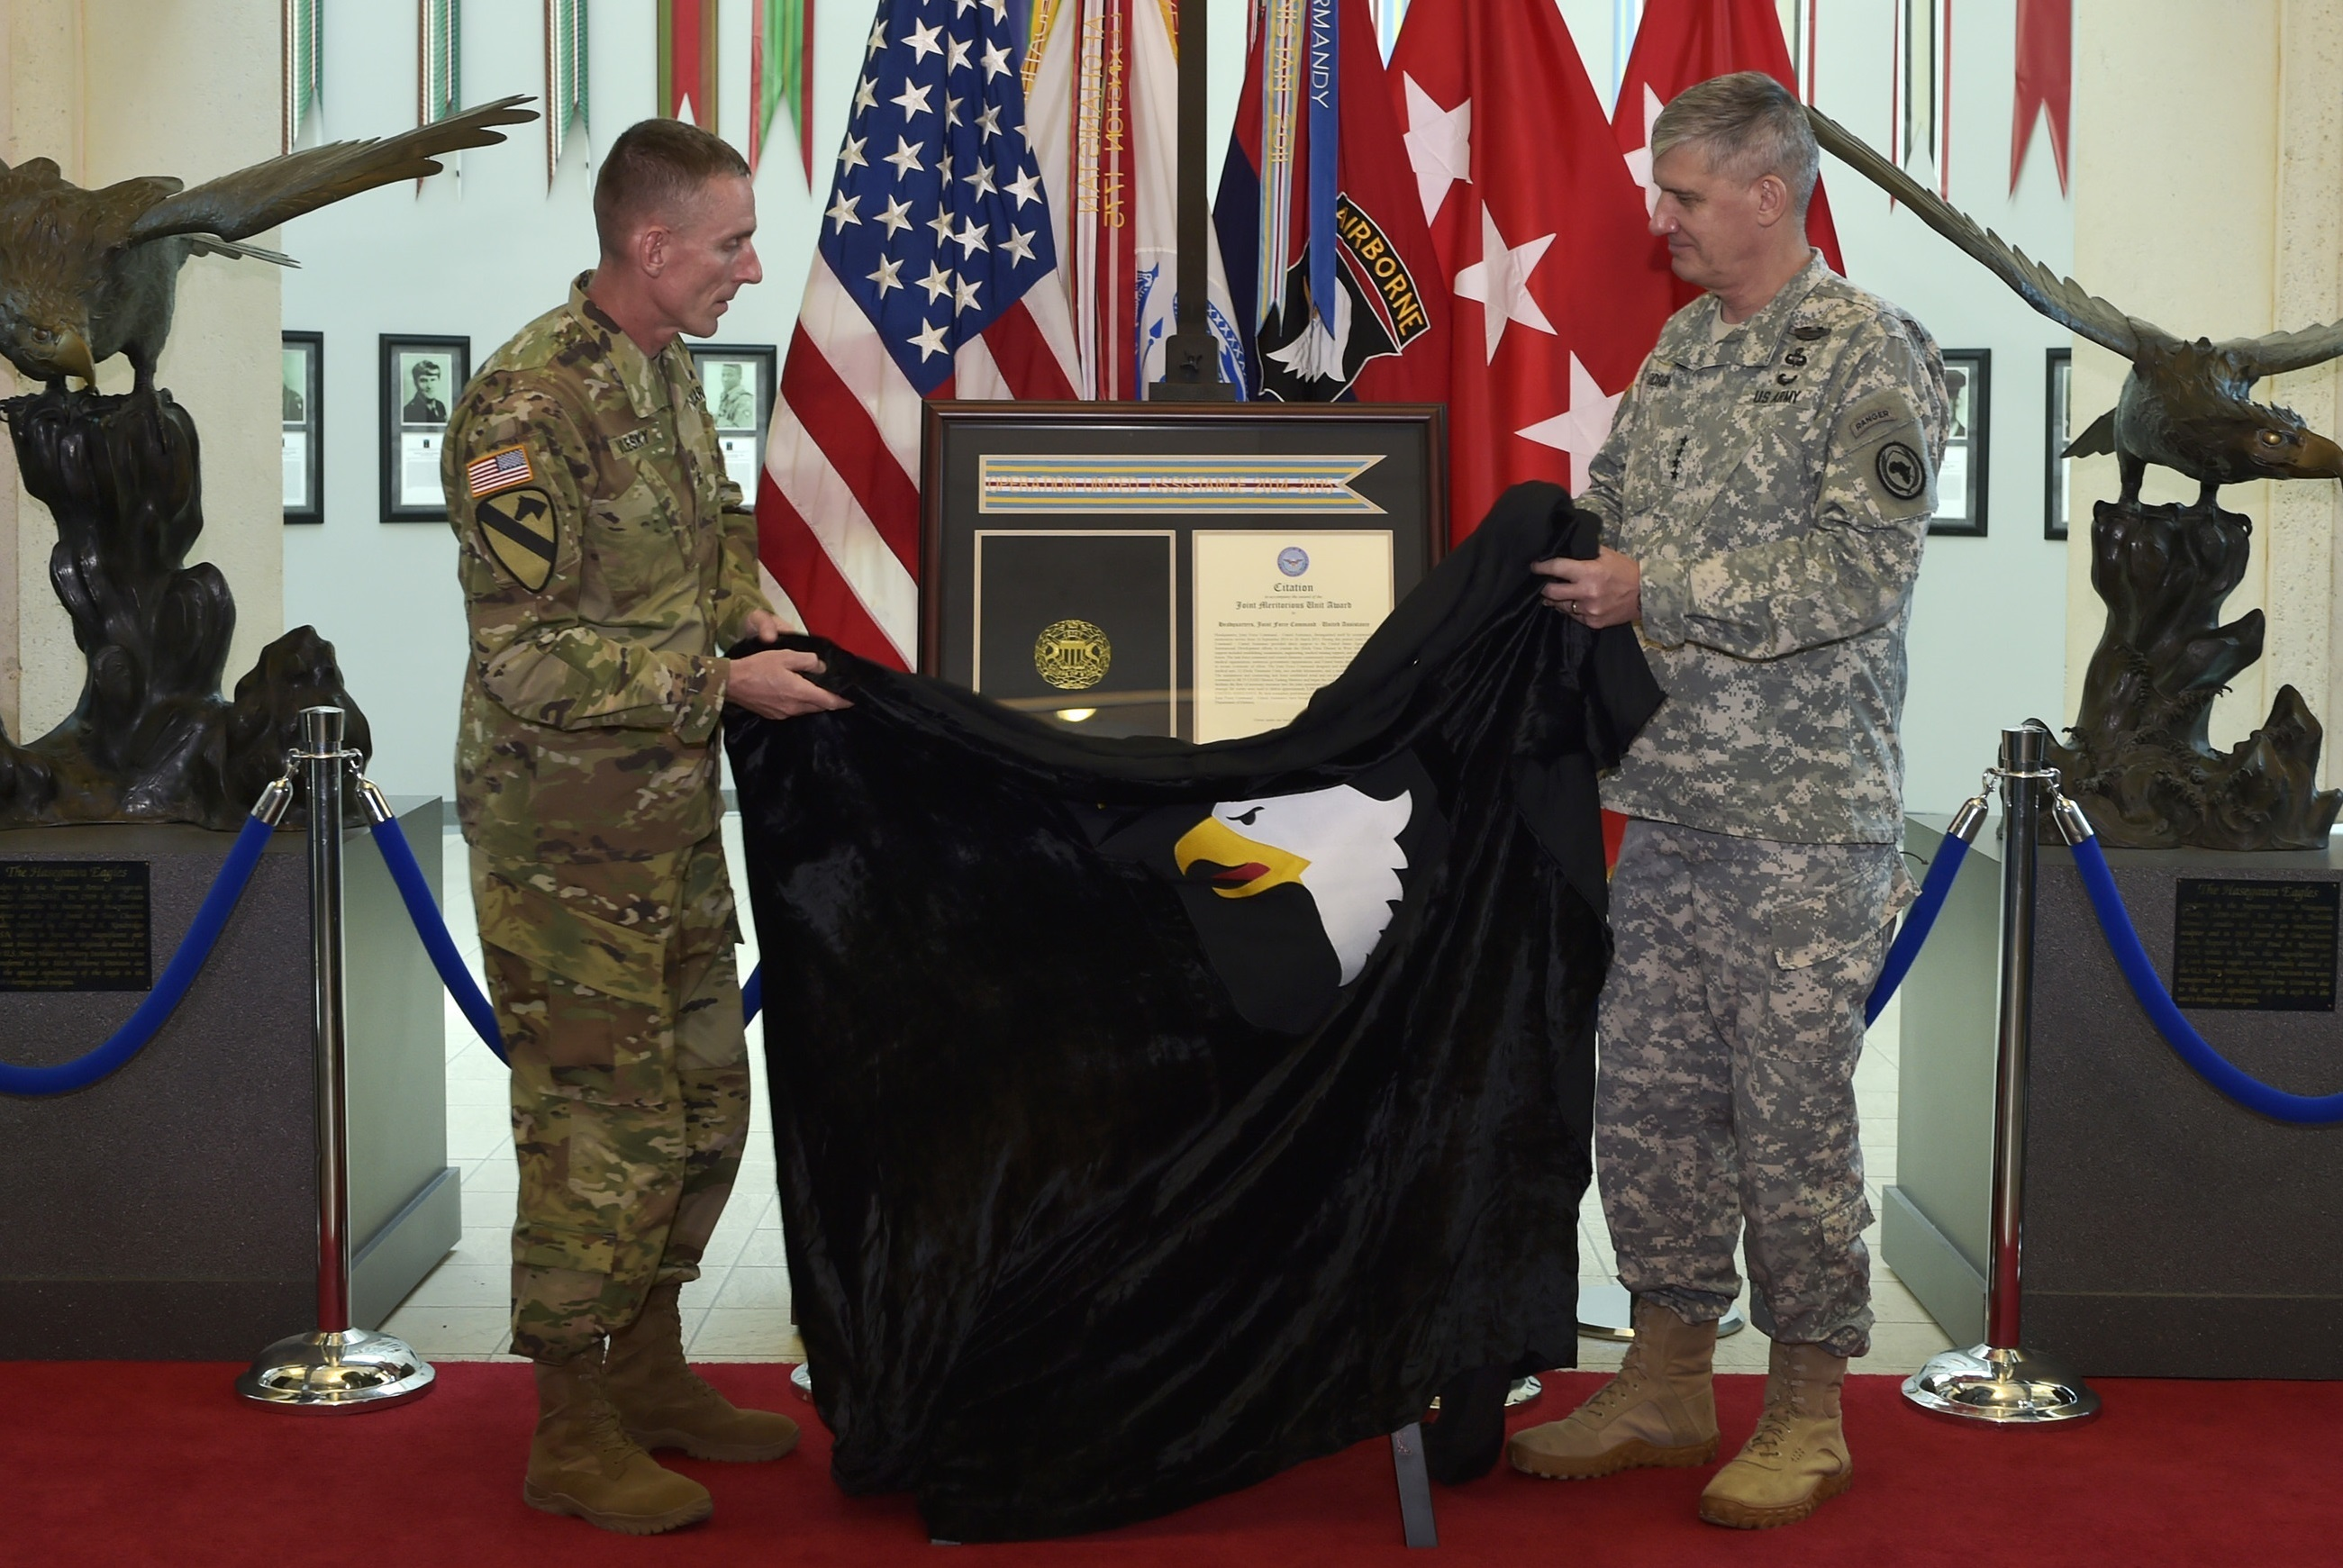 From right: Gen. David M. Rodriguez, commanding general, U.S. Africa Command, and Maj. Gen. Gary J. Volesky, commanding general, 101st Airborne Division (Air Assault) and Fort Campbell, unveil the Joint Meritorious Unit Award during a ceremony at McAuliffe Hall August 27, 2015. The JMUA, the second most prestigious award a unit can receive, was presented to the 101st Airborne Division for their humanitarian mission during the Ebola epidemic in Liberia. (U.S. Army photo by Jerry Woller, Lead VI Specialist-Fort Campbell)